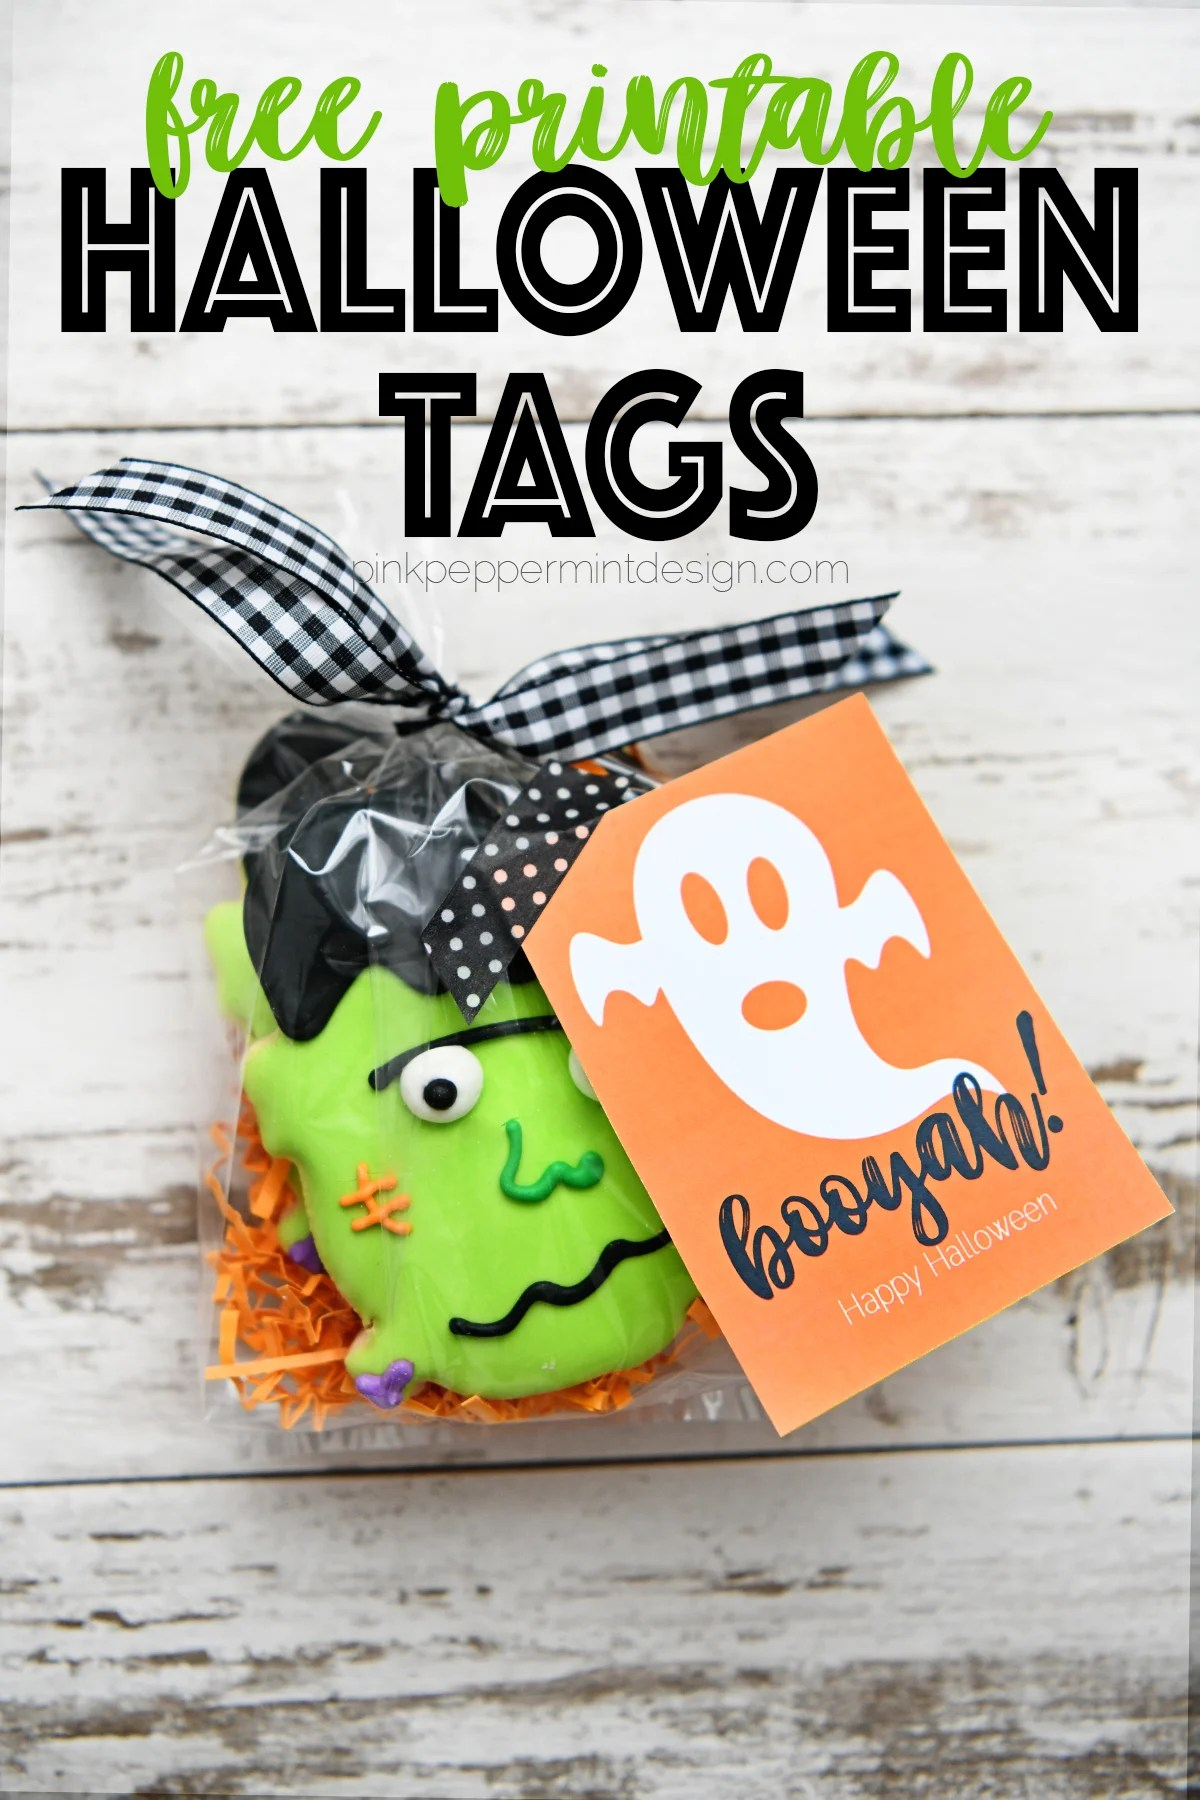 Adorable Free Printable Halloween Tags for Booing Friends and Neighbors : Booyah!